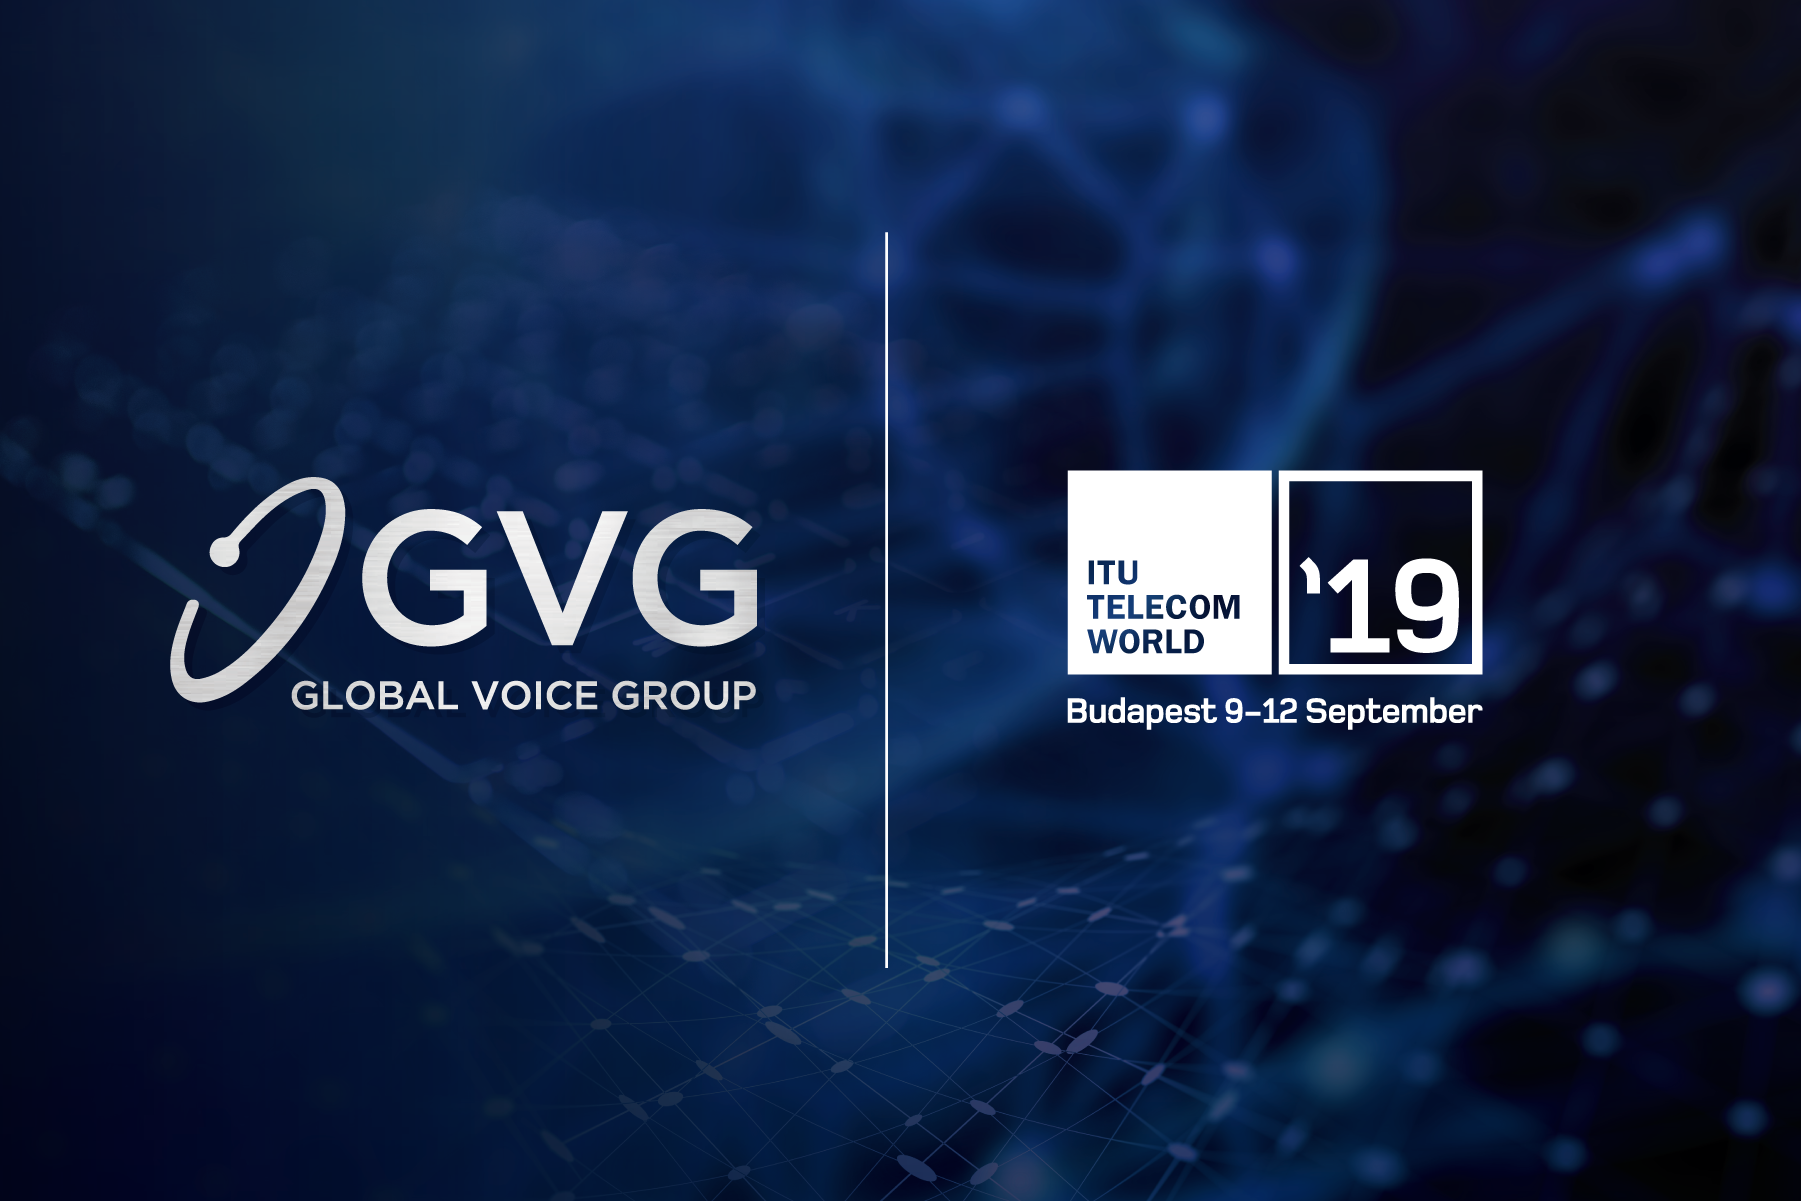 ITU Telecom World Event In Budapest – September 2019